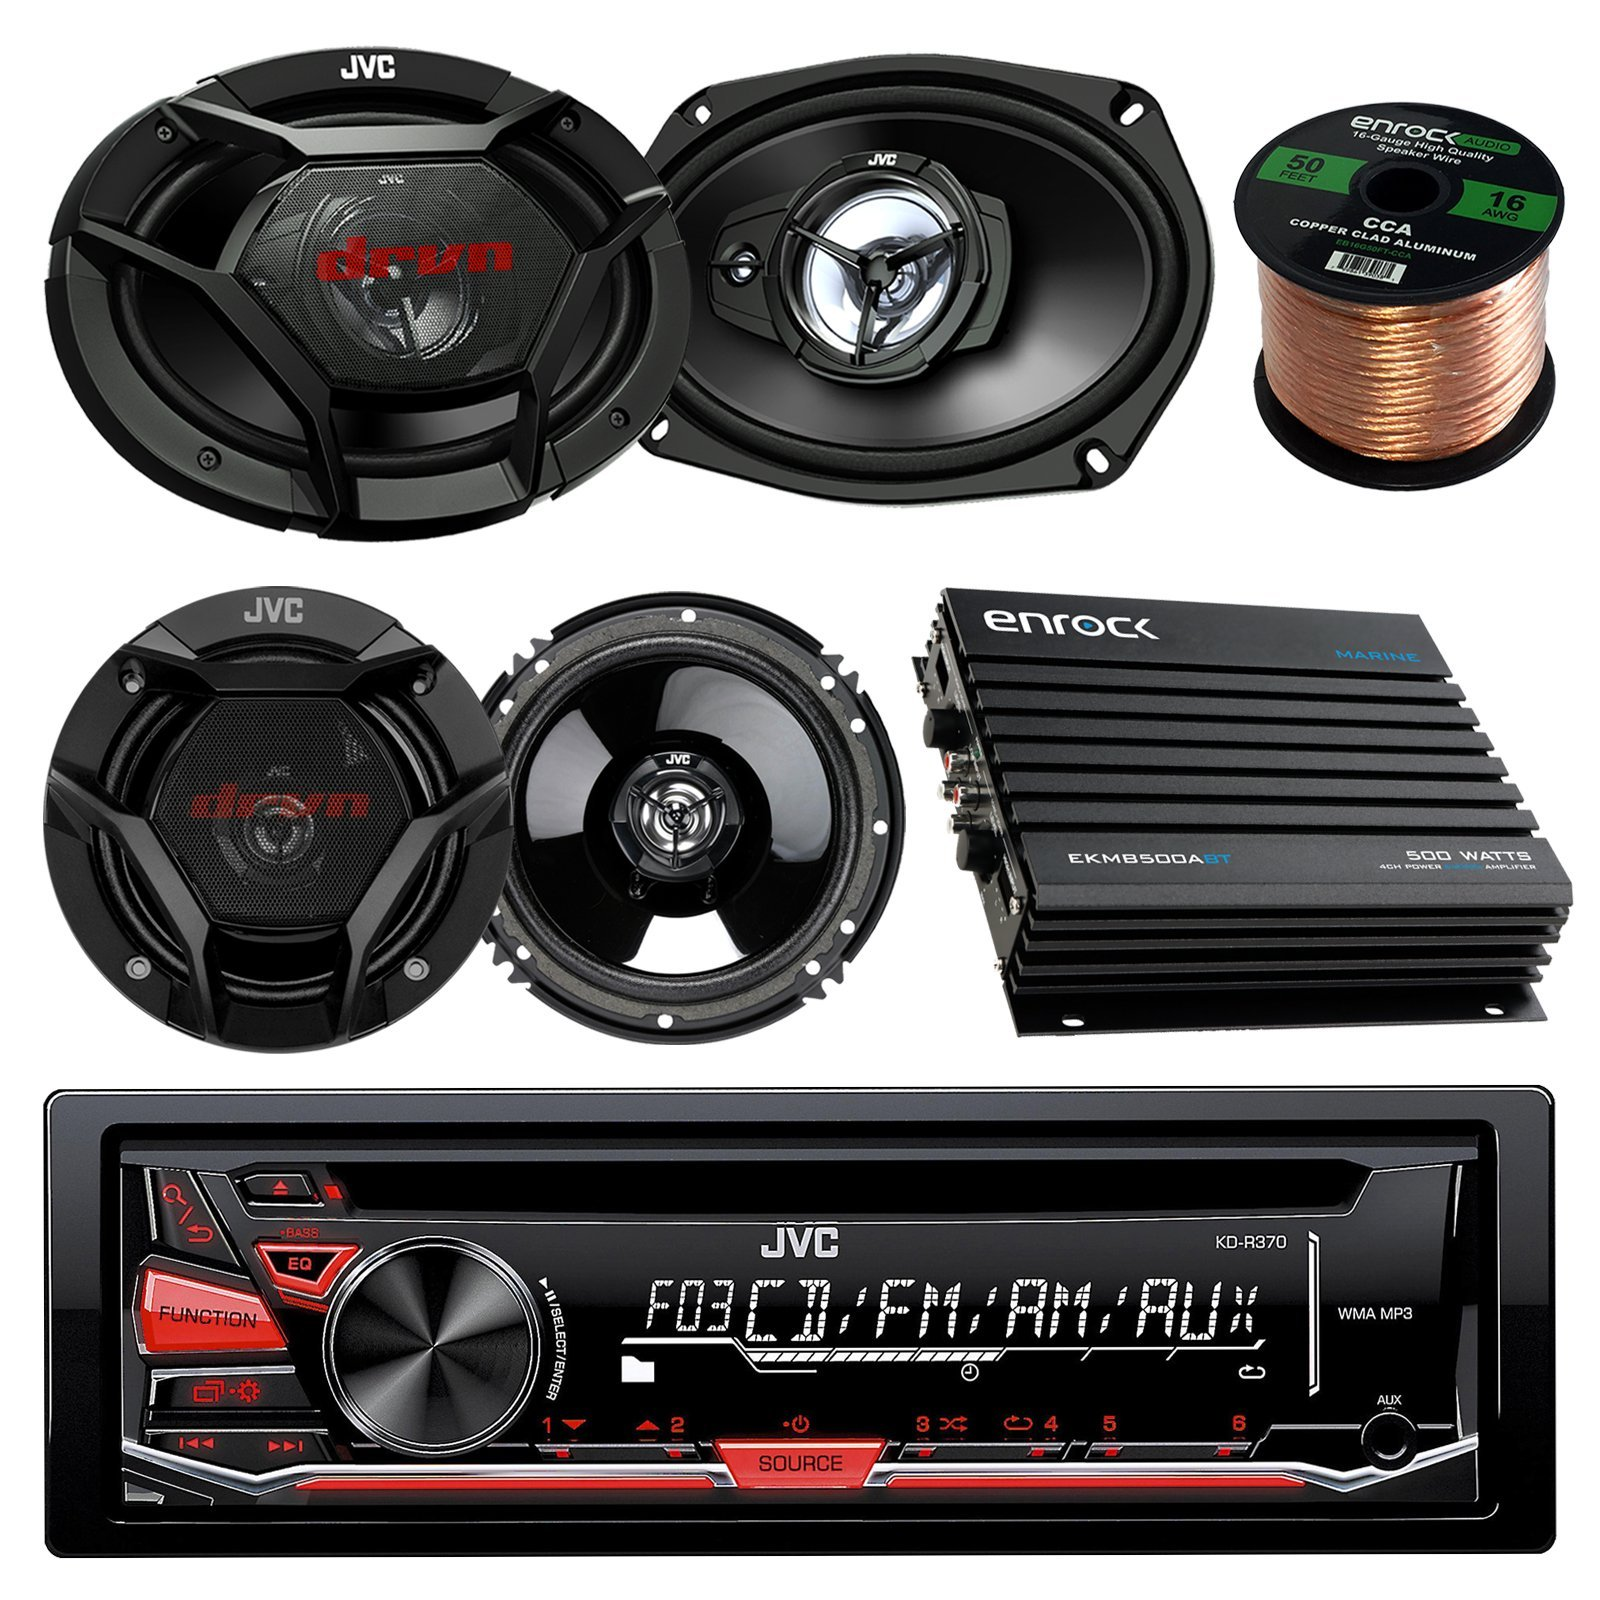 JVC KDR370 CD/MP3/WMA Receiver Bundle Combo With 2x CSDR6930 6x9'' 3-Way Stereo Coaxial Speakers + 2x CSDR620 6.5'' 2-Way Audio Speaker + Enrock 400w 4-Chan Bluetooth Amplifier + 50Ft 16g Speaker Wire by JVC